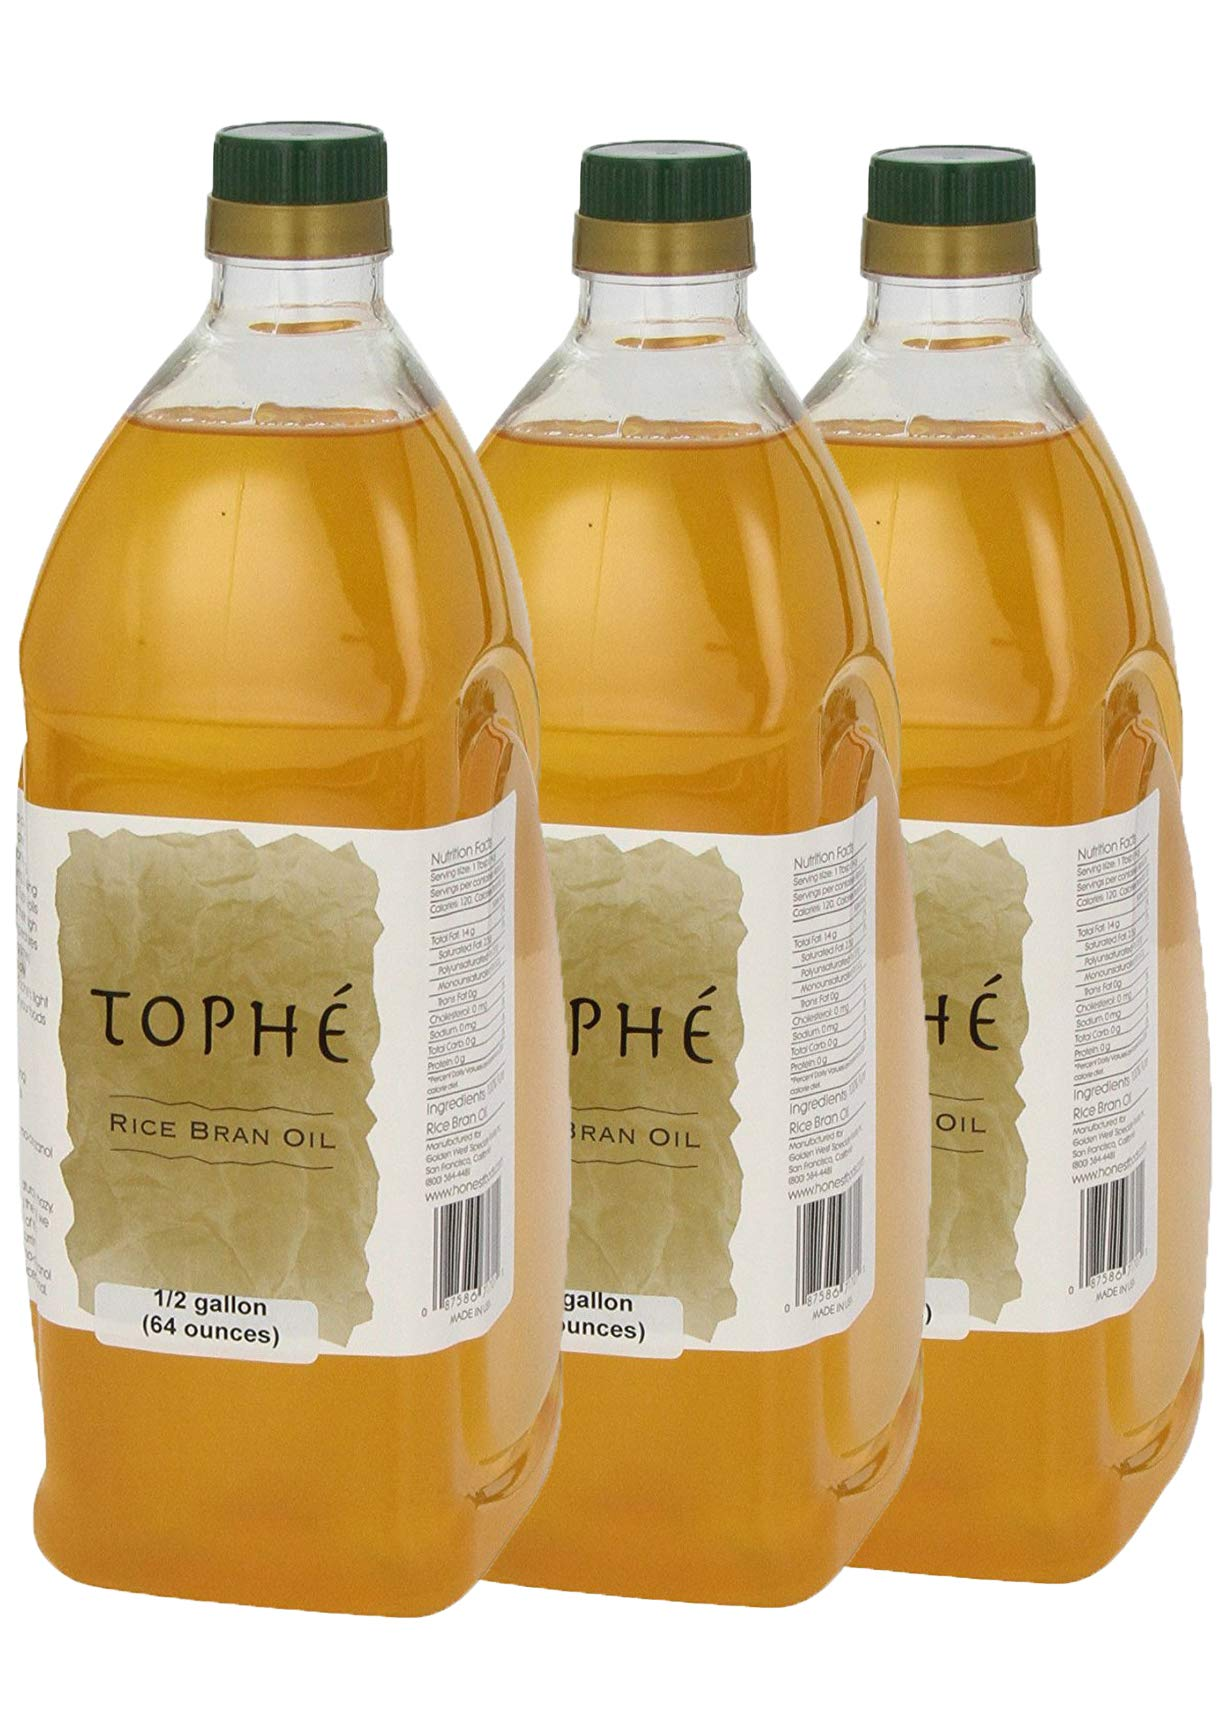 RICE BRAN OIL   All Natural, Made from 100% USA Grown Non GMO Rice   Rich in Vitamin E and Gamma-Oryzanol   Unfiltered, Non Winterized, No Trans Fat and Heart Healthy   3-Pack 1/2 Gallon By Tophé